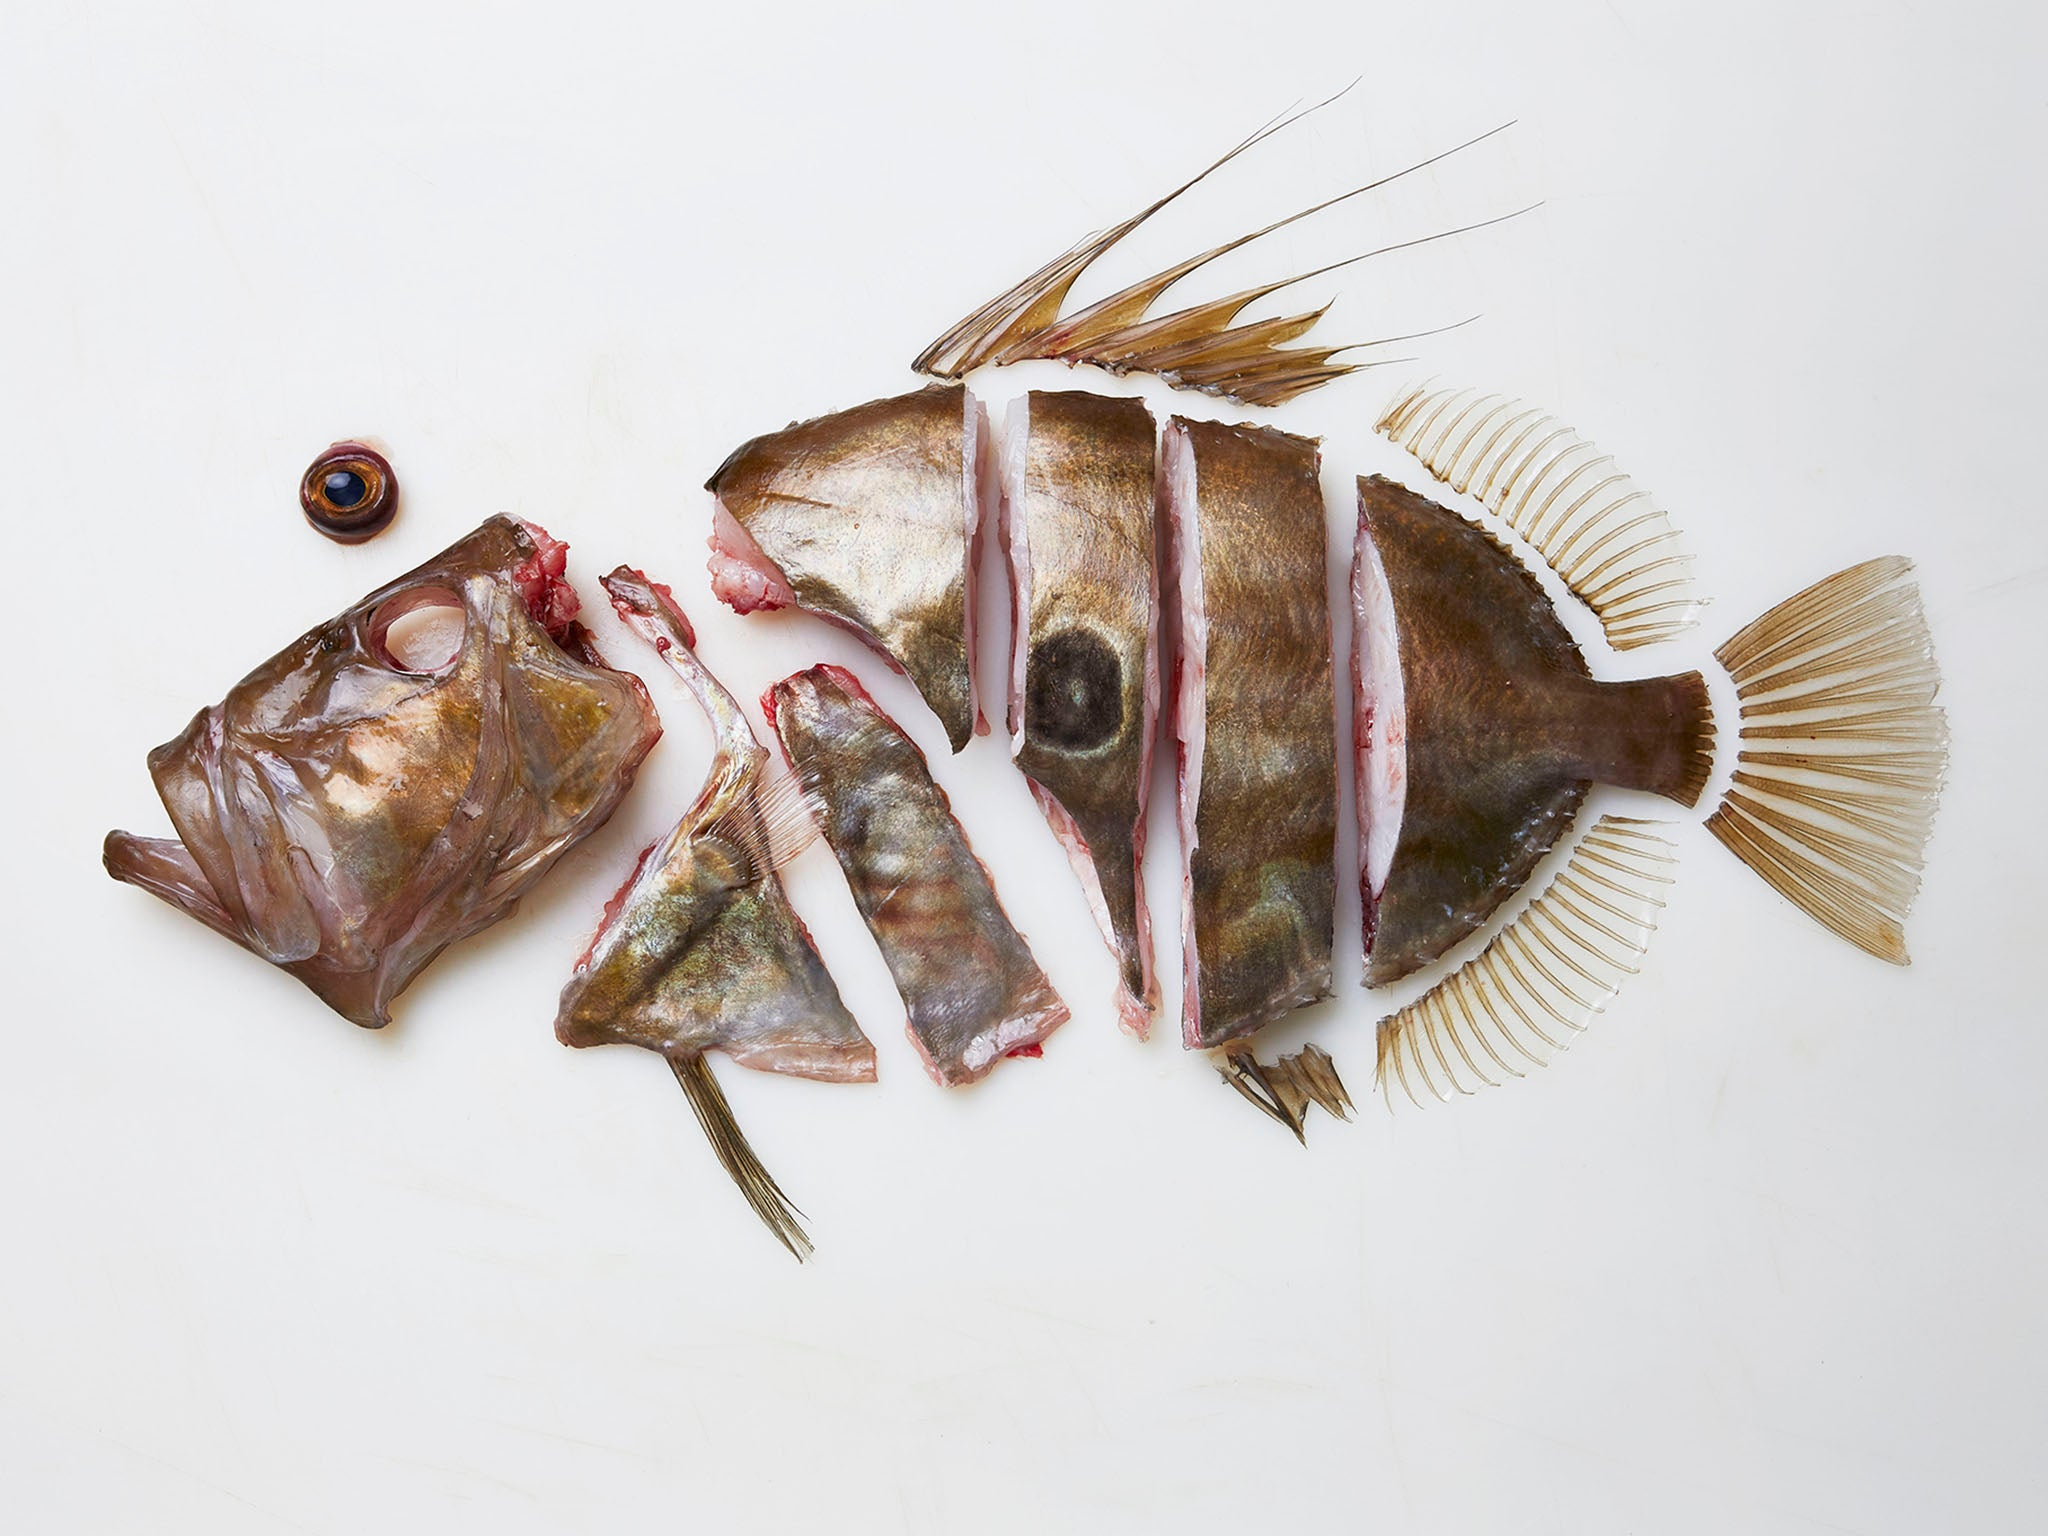 Gill-to-fin eating: Why we need to widen the net and eat more challenging fish cuts